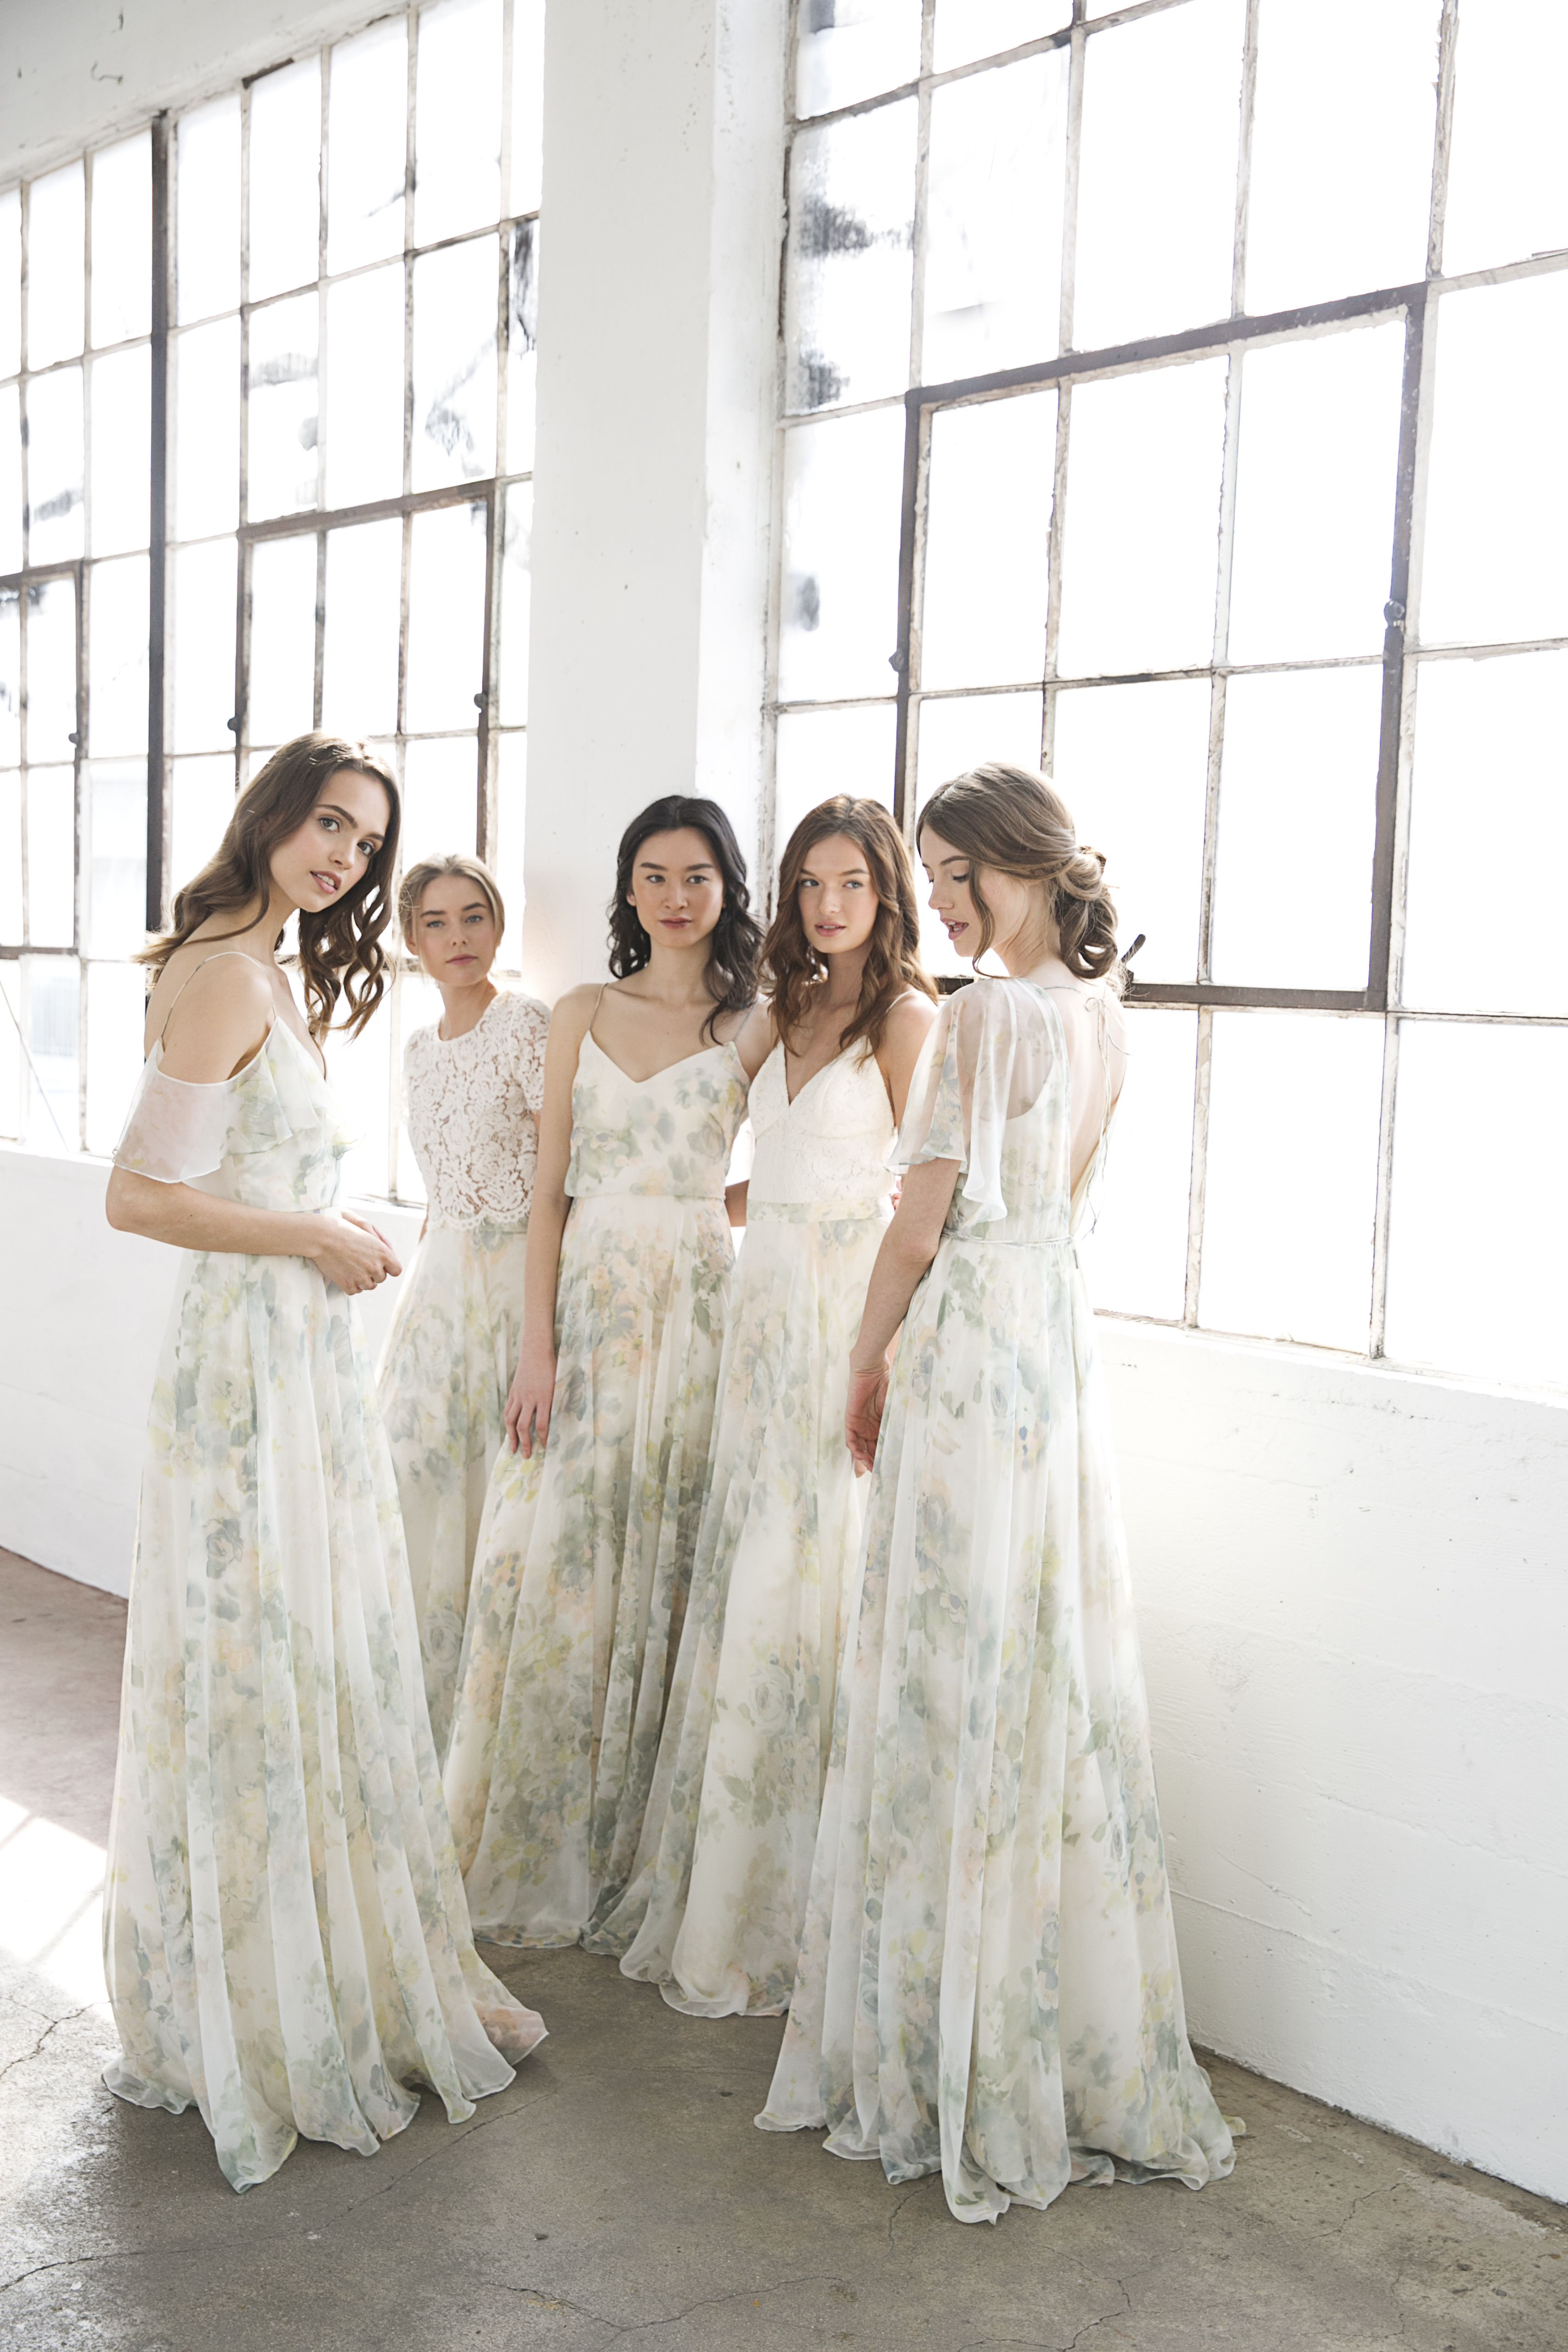 Mix Match Vintage Floral Bridesmaids Dresses From Jenny Yoo Collection Floral Bridesmaid Dresses Printed Bridesmaid Dresses Bridesmaid Dresses Floral Print